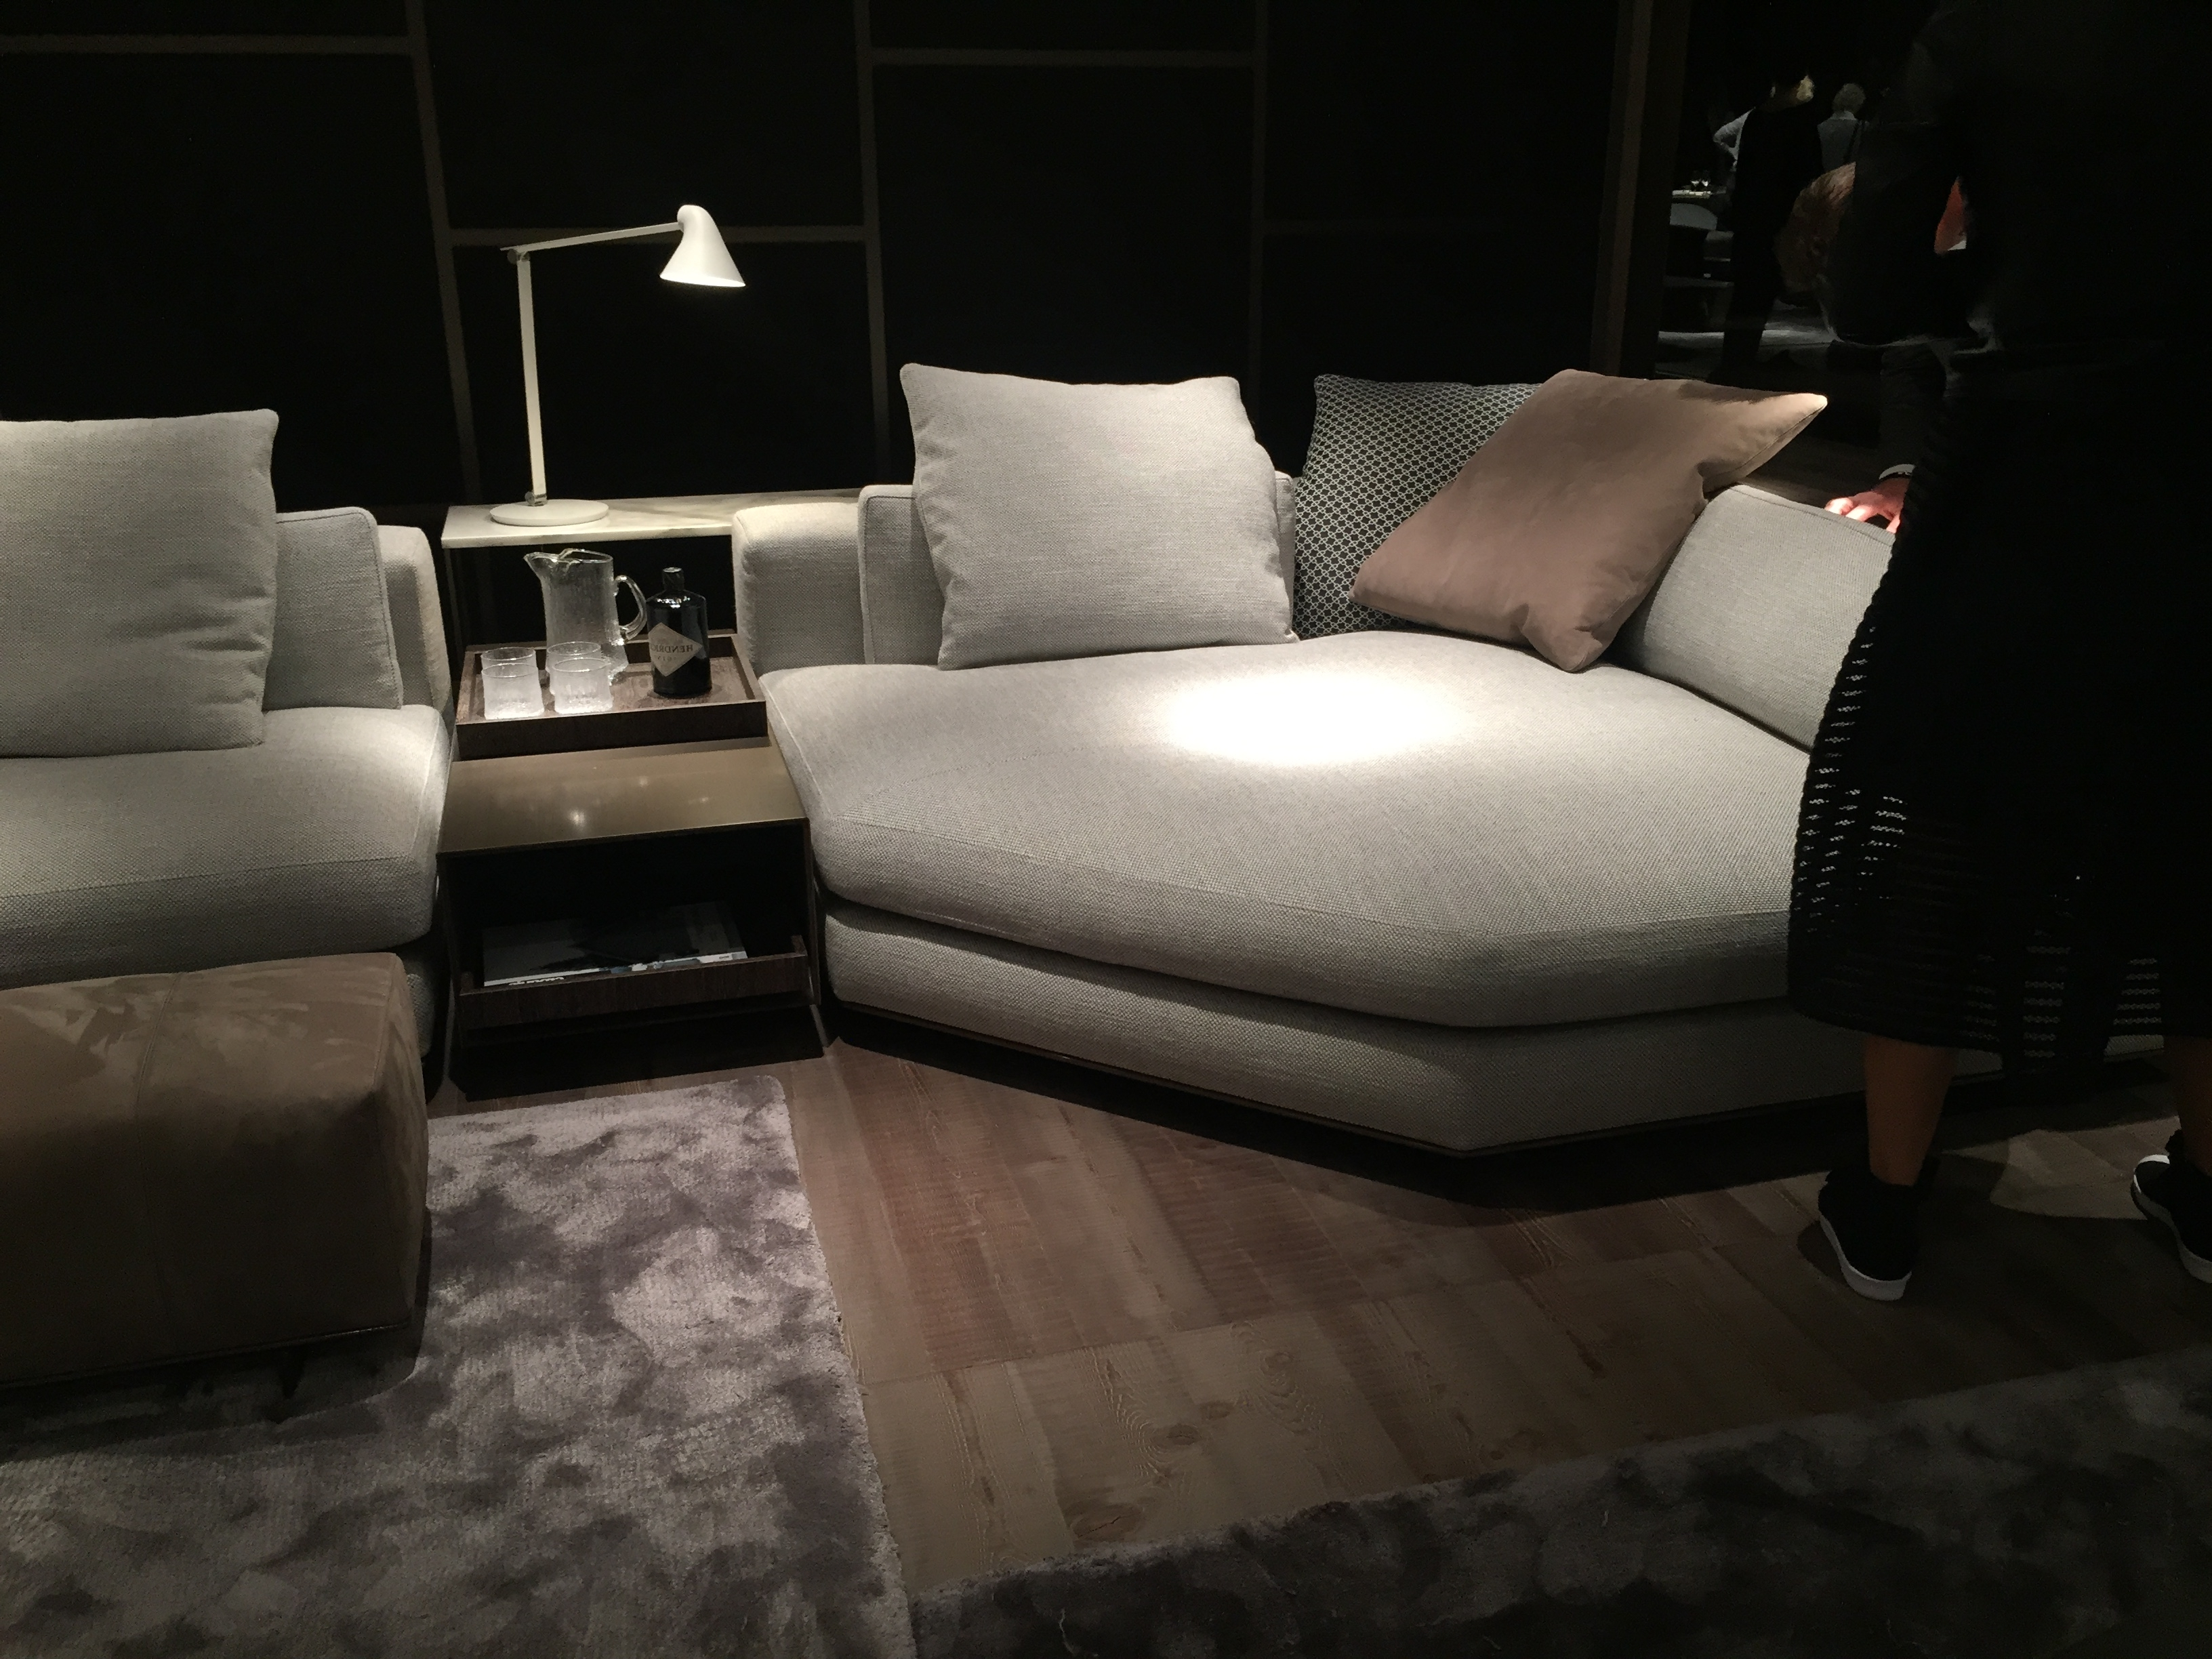 Minotti – Freeman Seating Corner And Console And Arne Jacobsen With Regard To Most Current Sofas With Consoles (View 15 of 15)